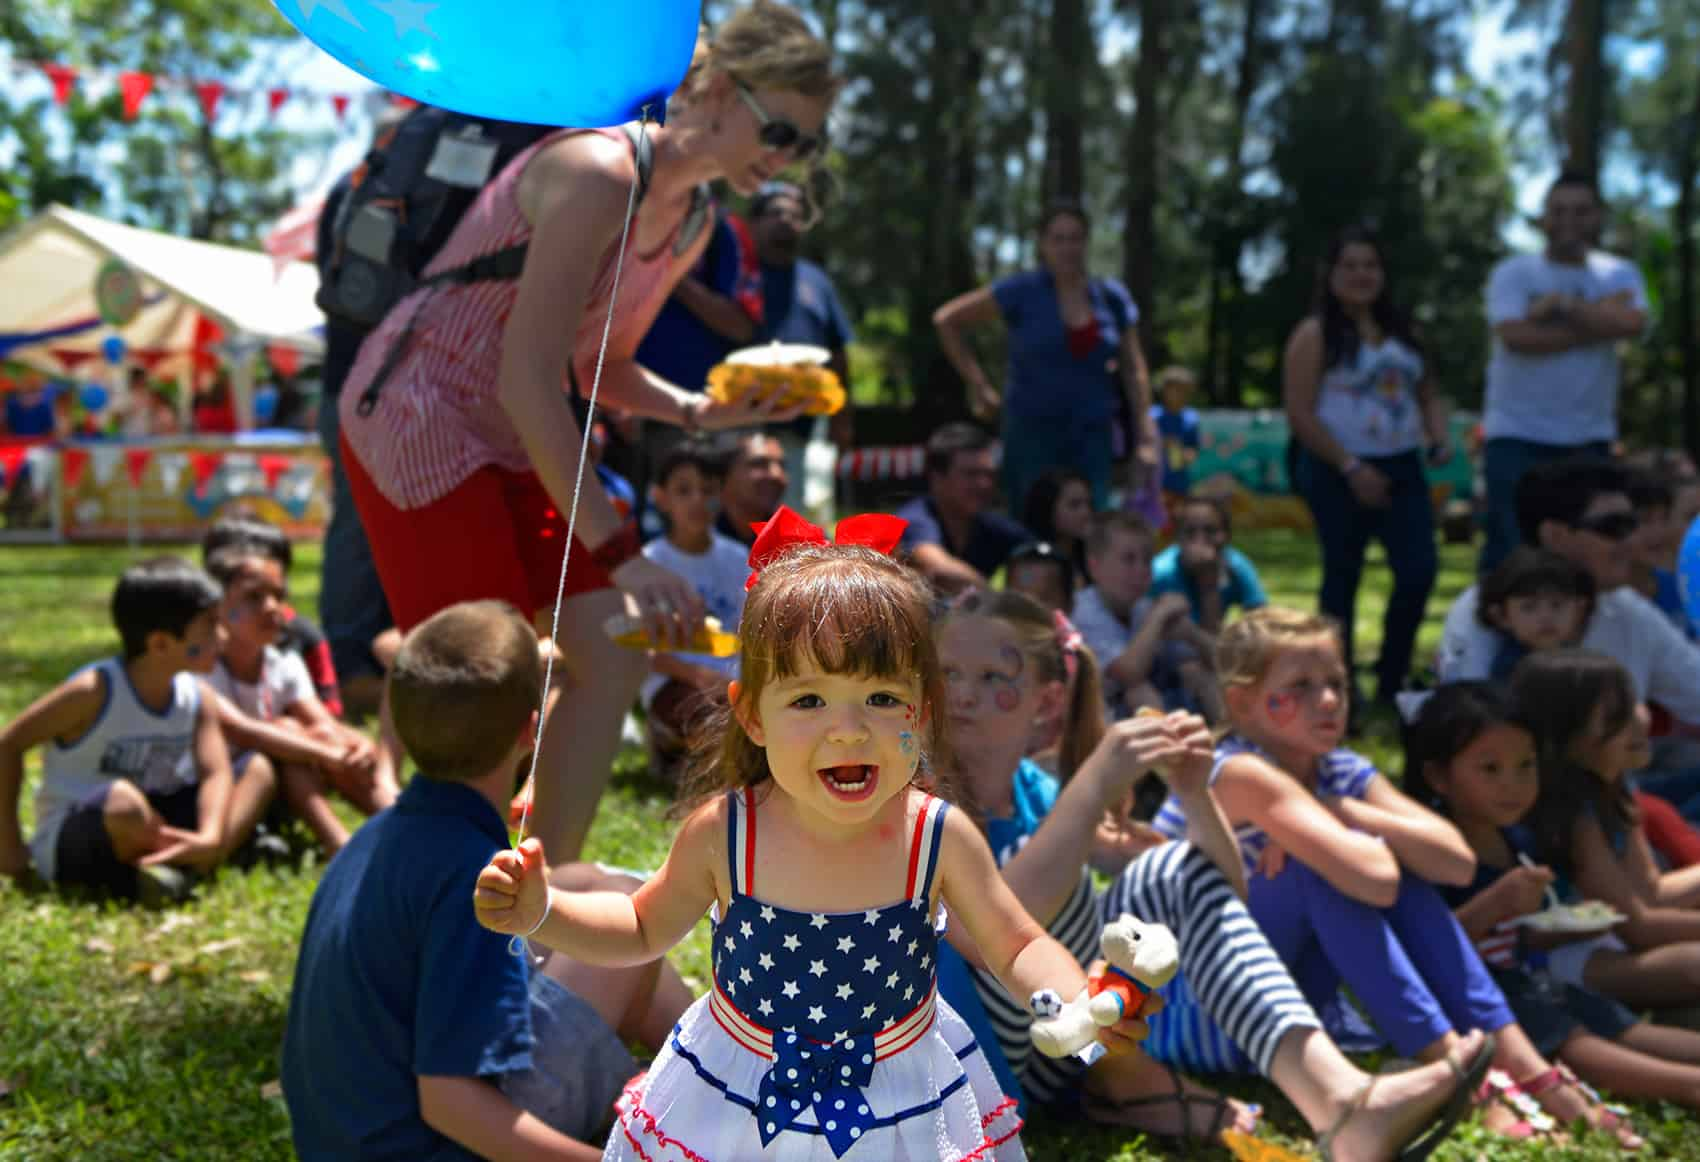 4th of July picnic, little girl